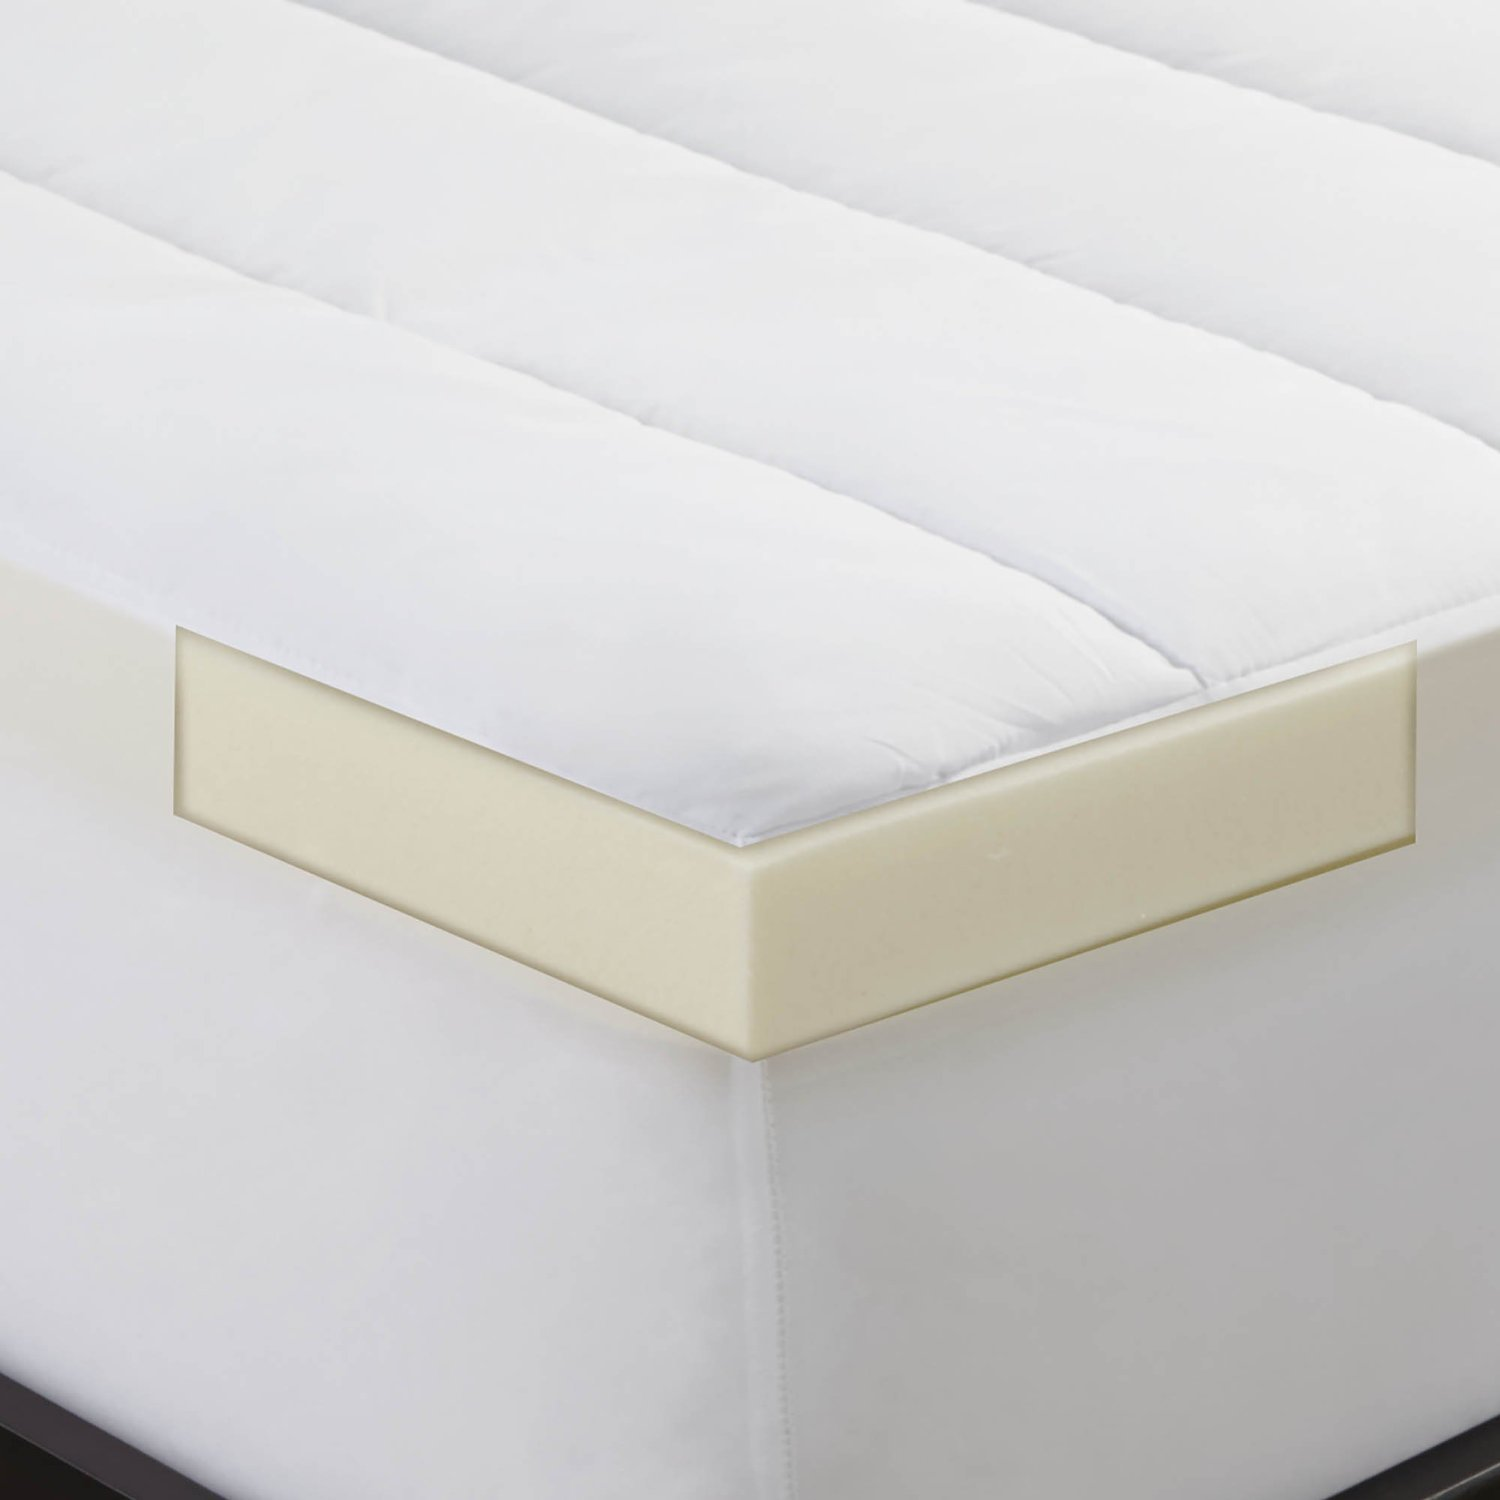 Sleep Innovations 2-inch Memory Foam Mattress Topper and Waterproof Mattress Protector